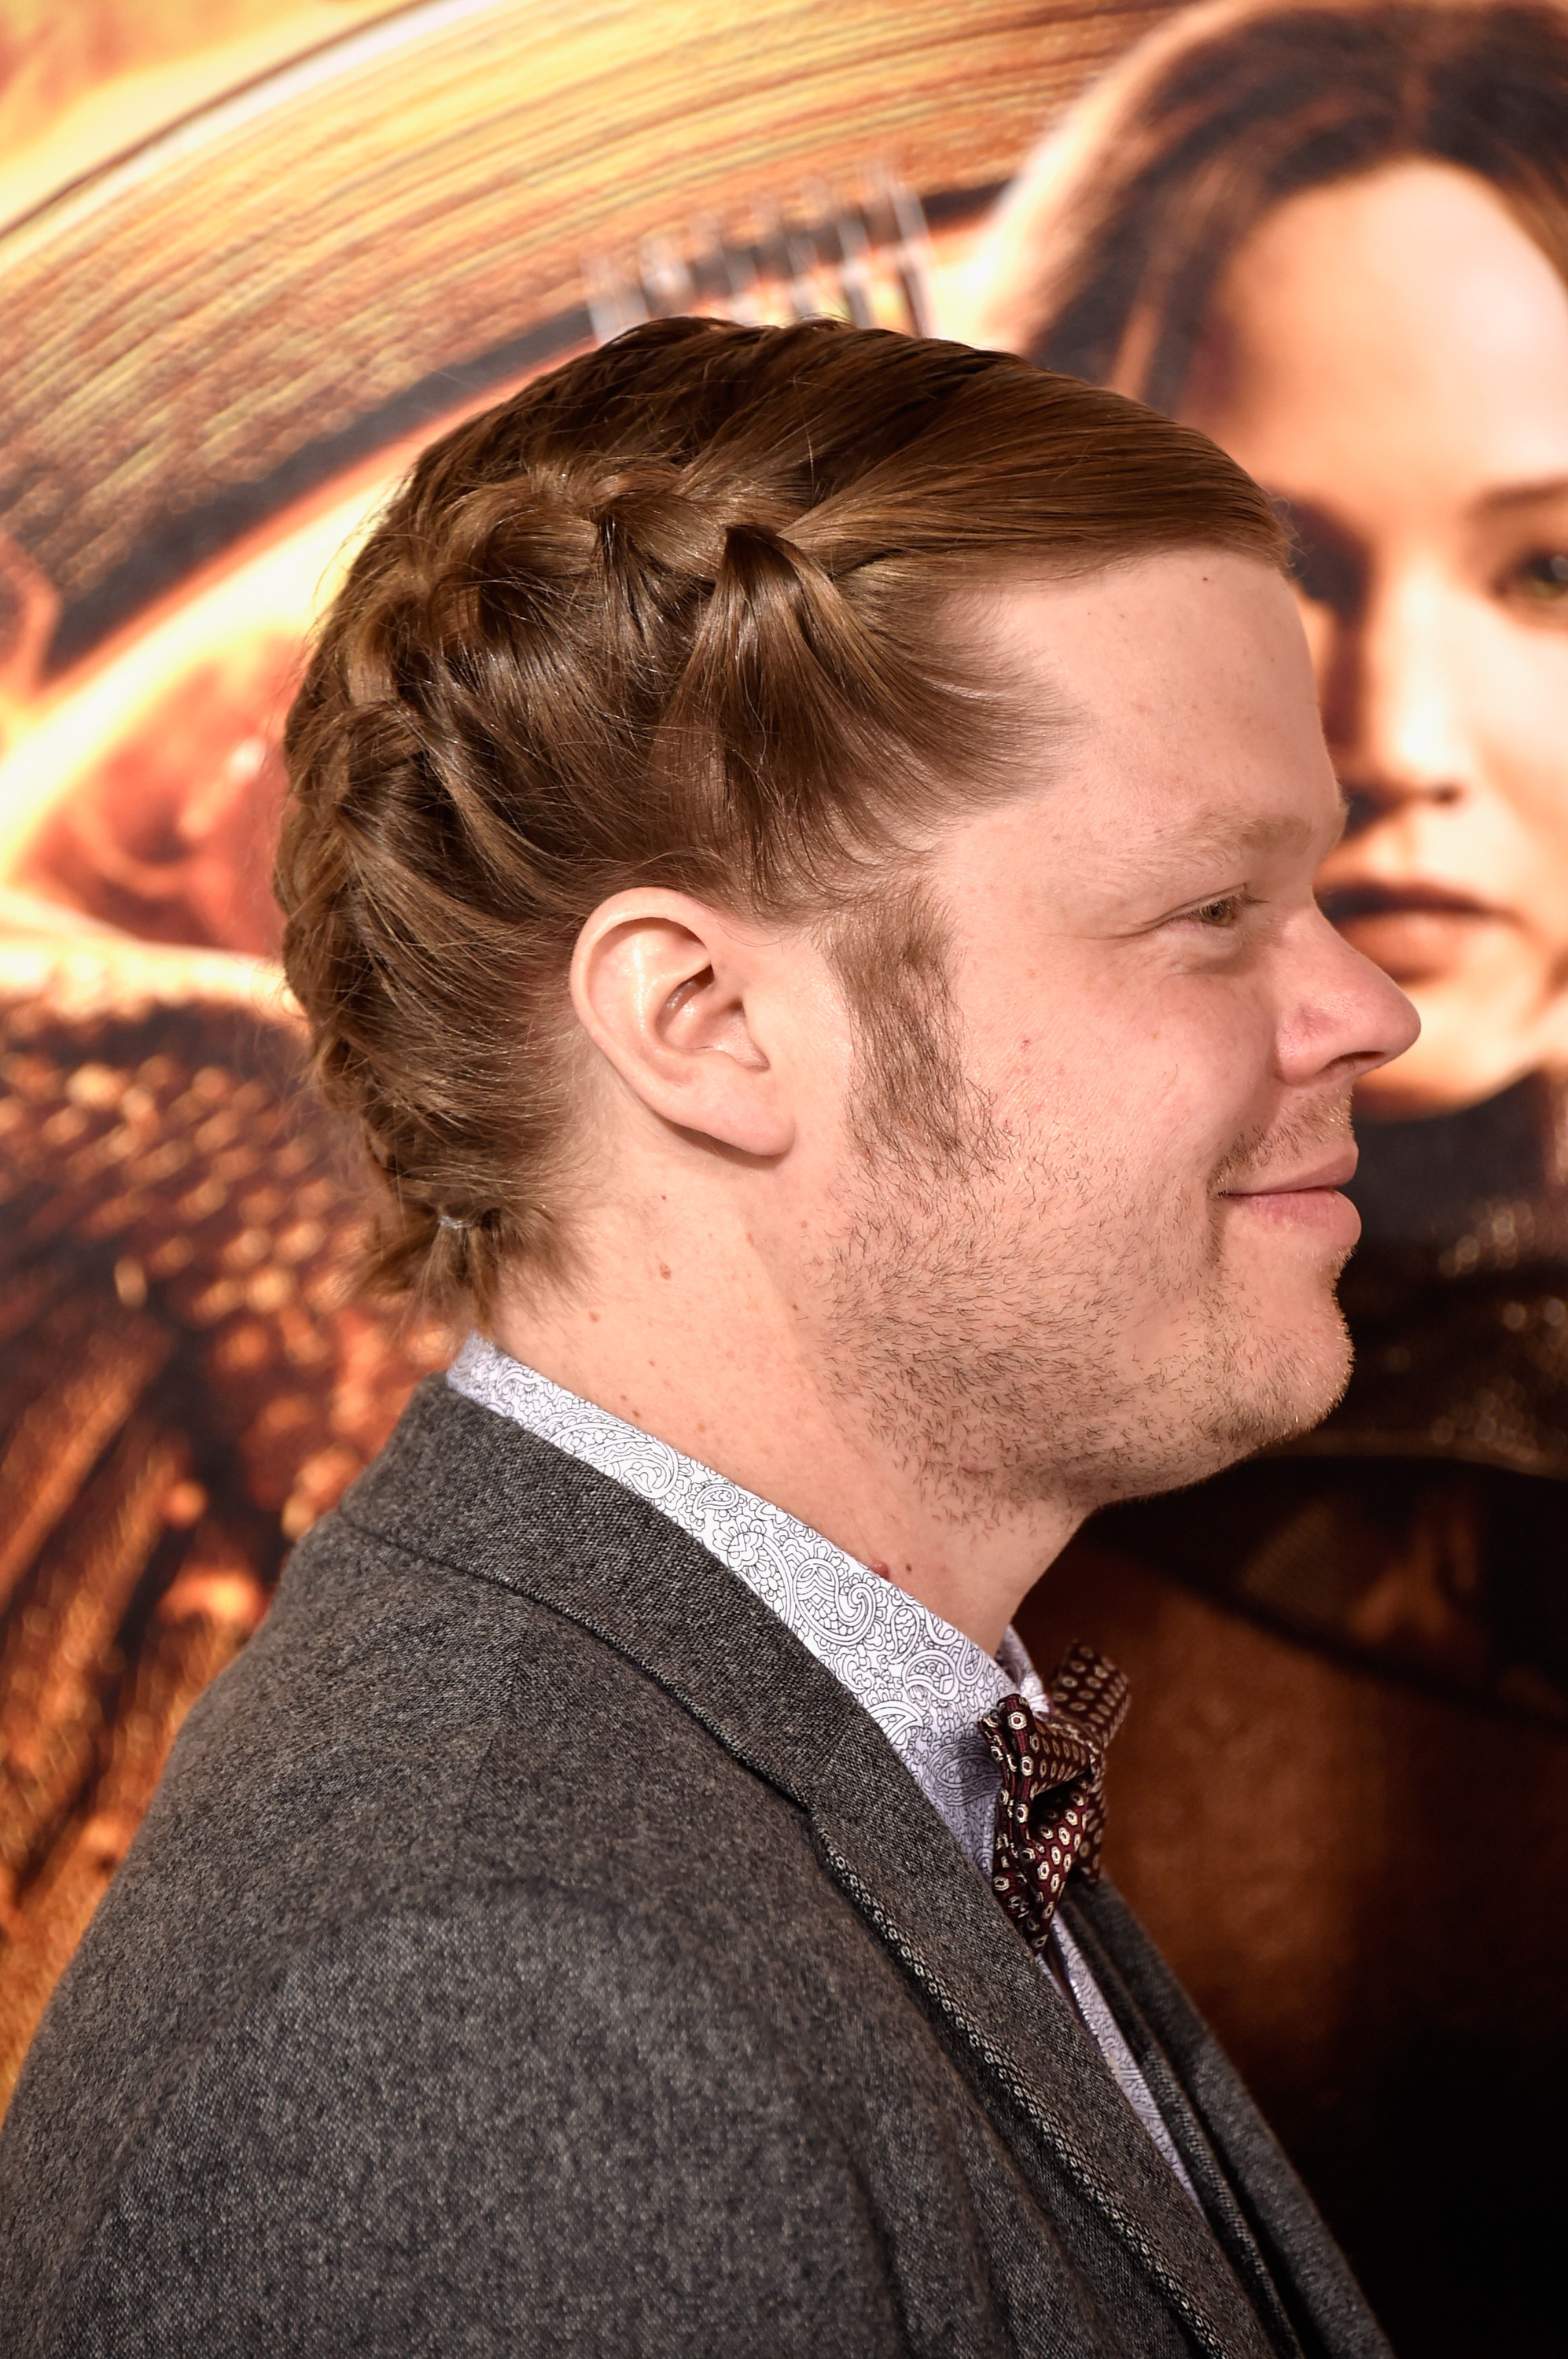 Elden hensons red carpet man braids are everything thefashionspot image getty images ccuart Gallery